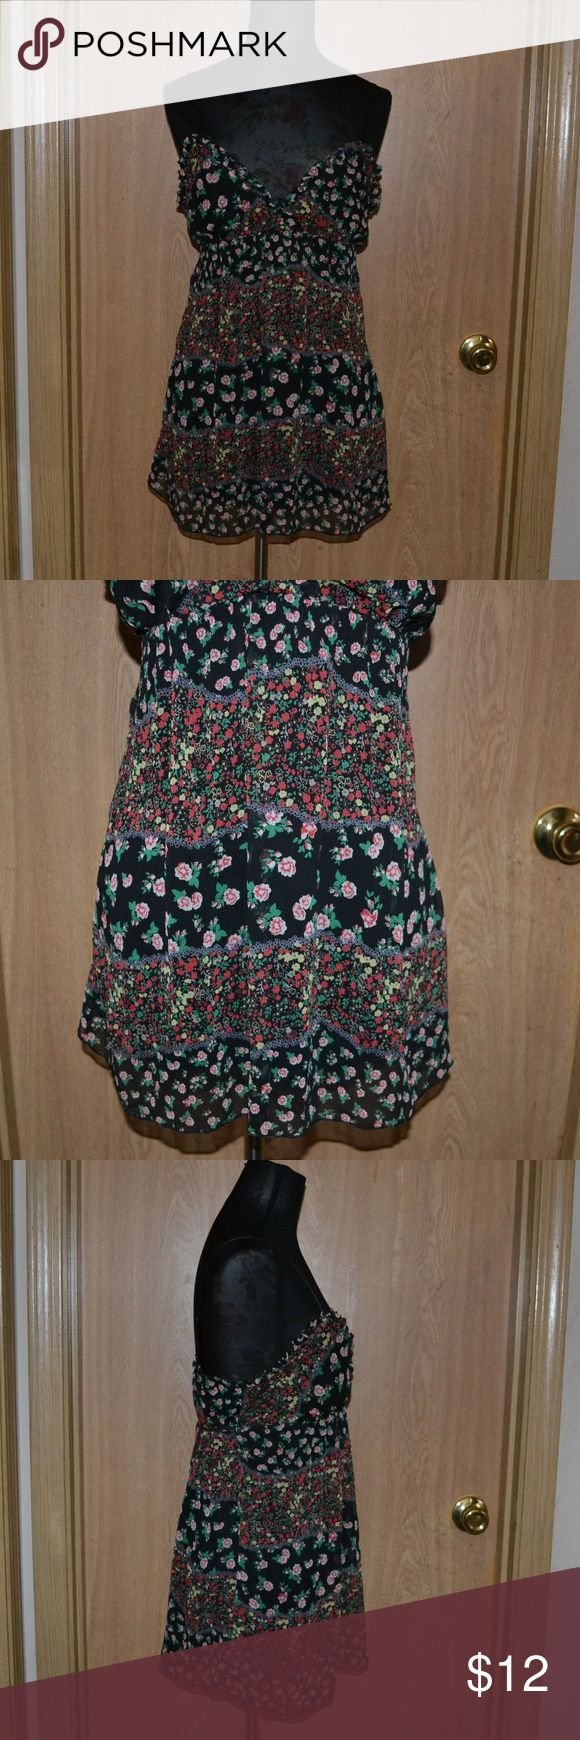 B. tru floral cami size large Smoke free home! BUNDLE & SAVE! I ship Monday - Friday! NO HOLDS OR TRADES!!! Offers are always welcomed as long as they're submitted through the OFFER BUTTON!   A super cute colorful, floral cami by the brand B.tru size large . Materials: 100% polyester in good condition B.tru Tops Camisoles